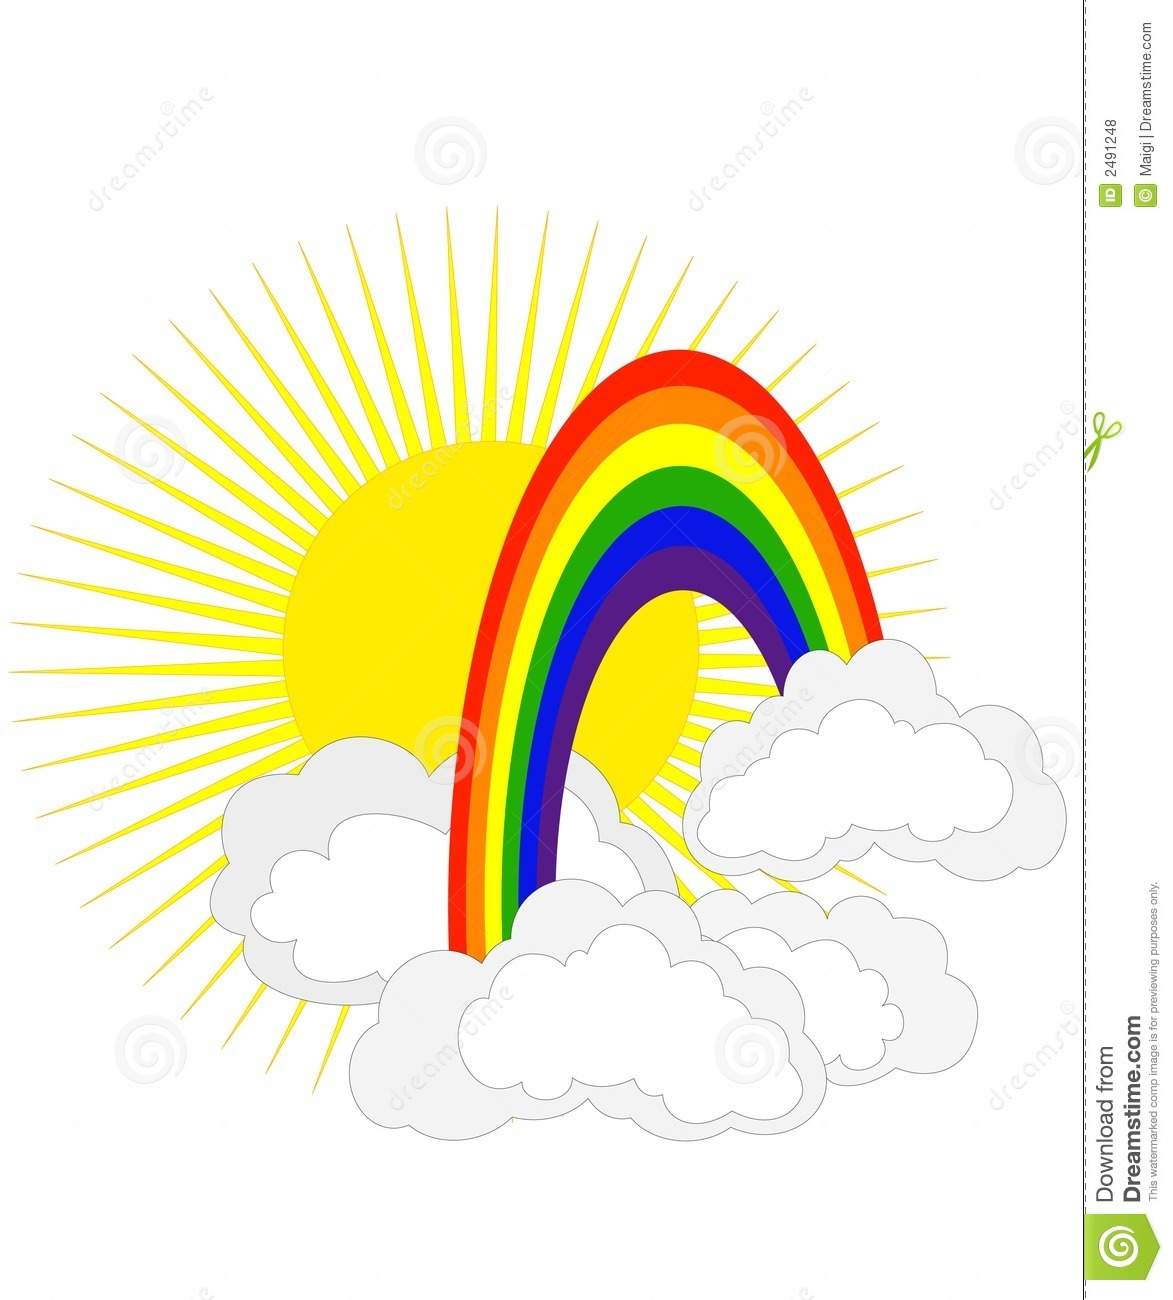 Sun and rainbow stock vector. Image of clouds, clipart ...